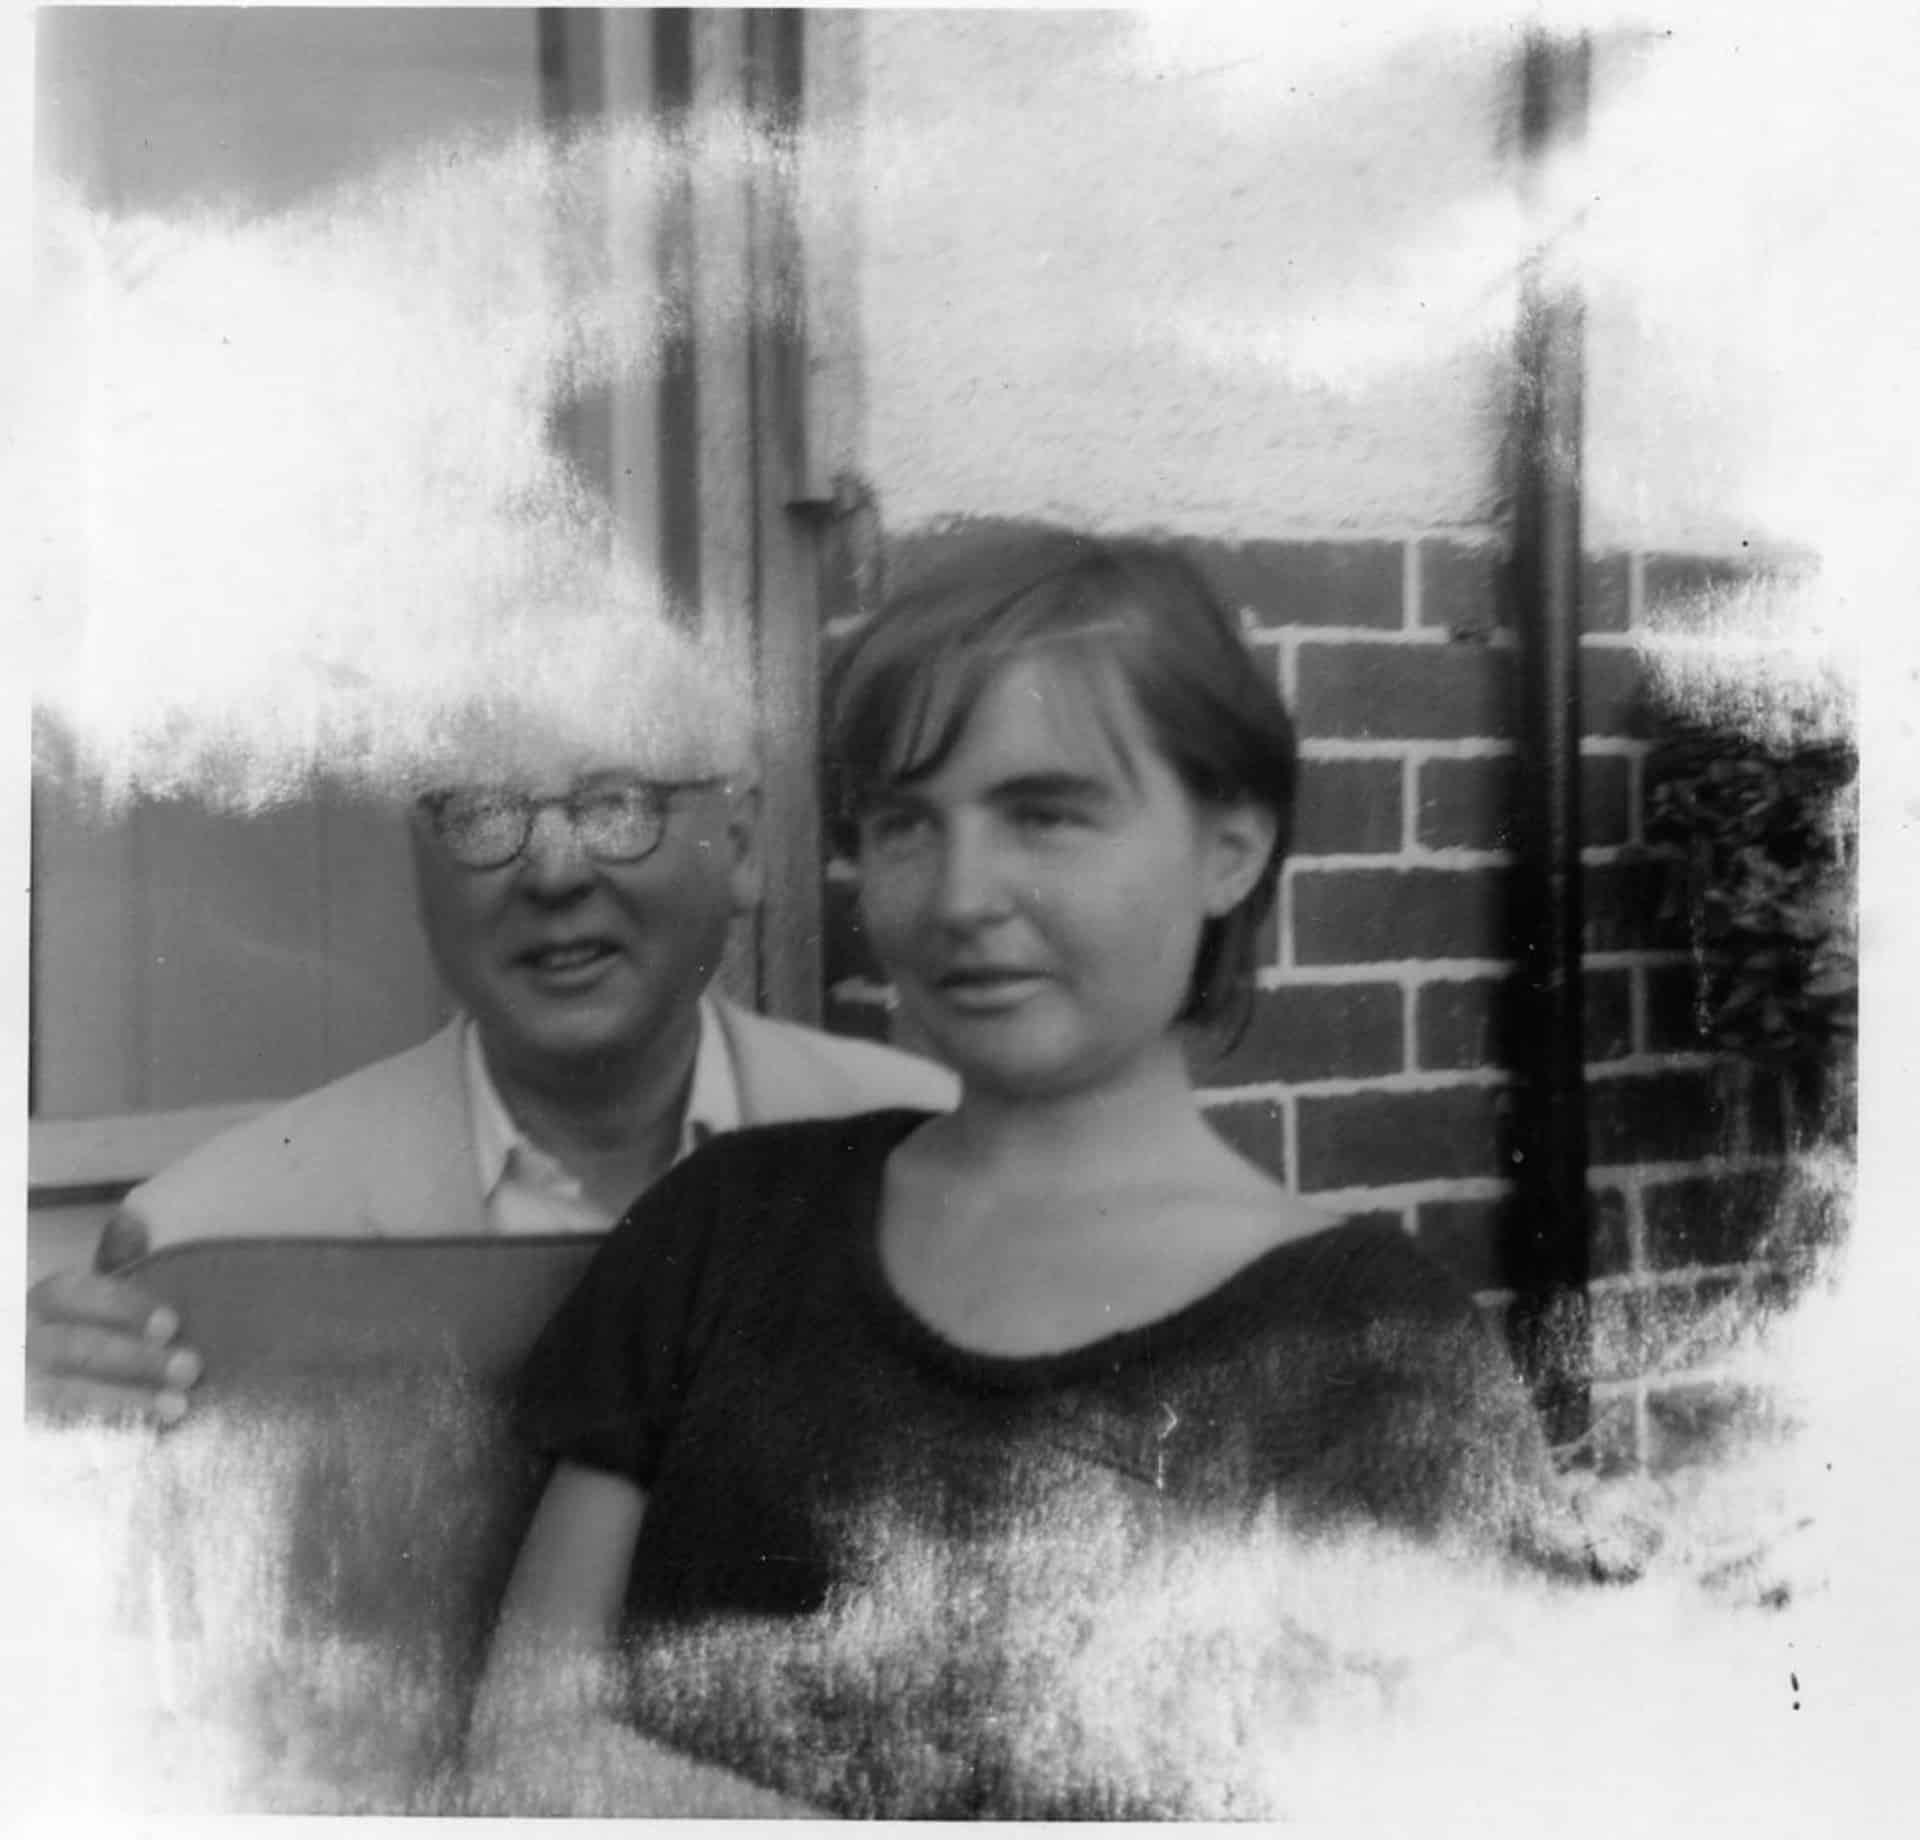 Charles Edward and his daughter Jenny Potts, Ridgacre Road, Quinton, 1965